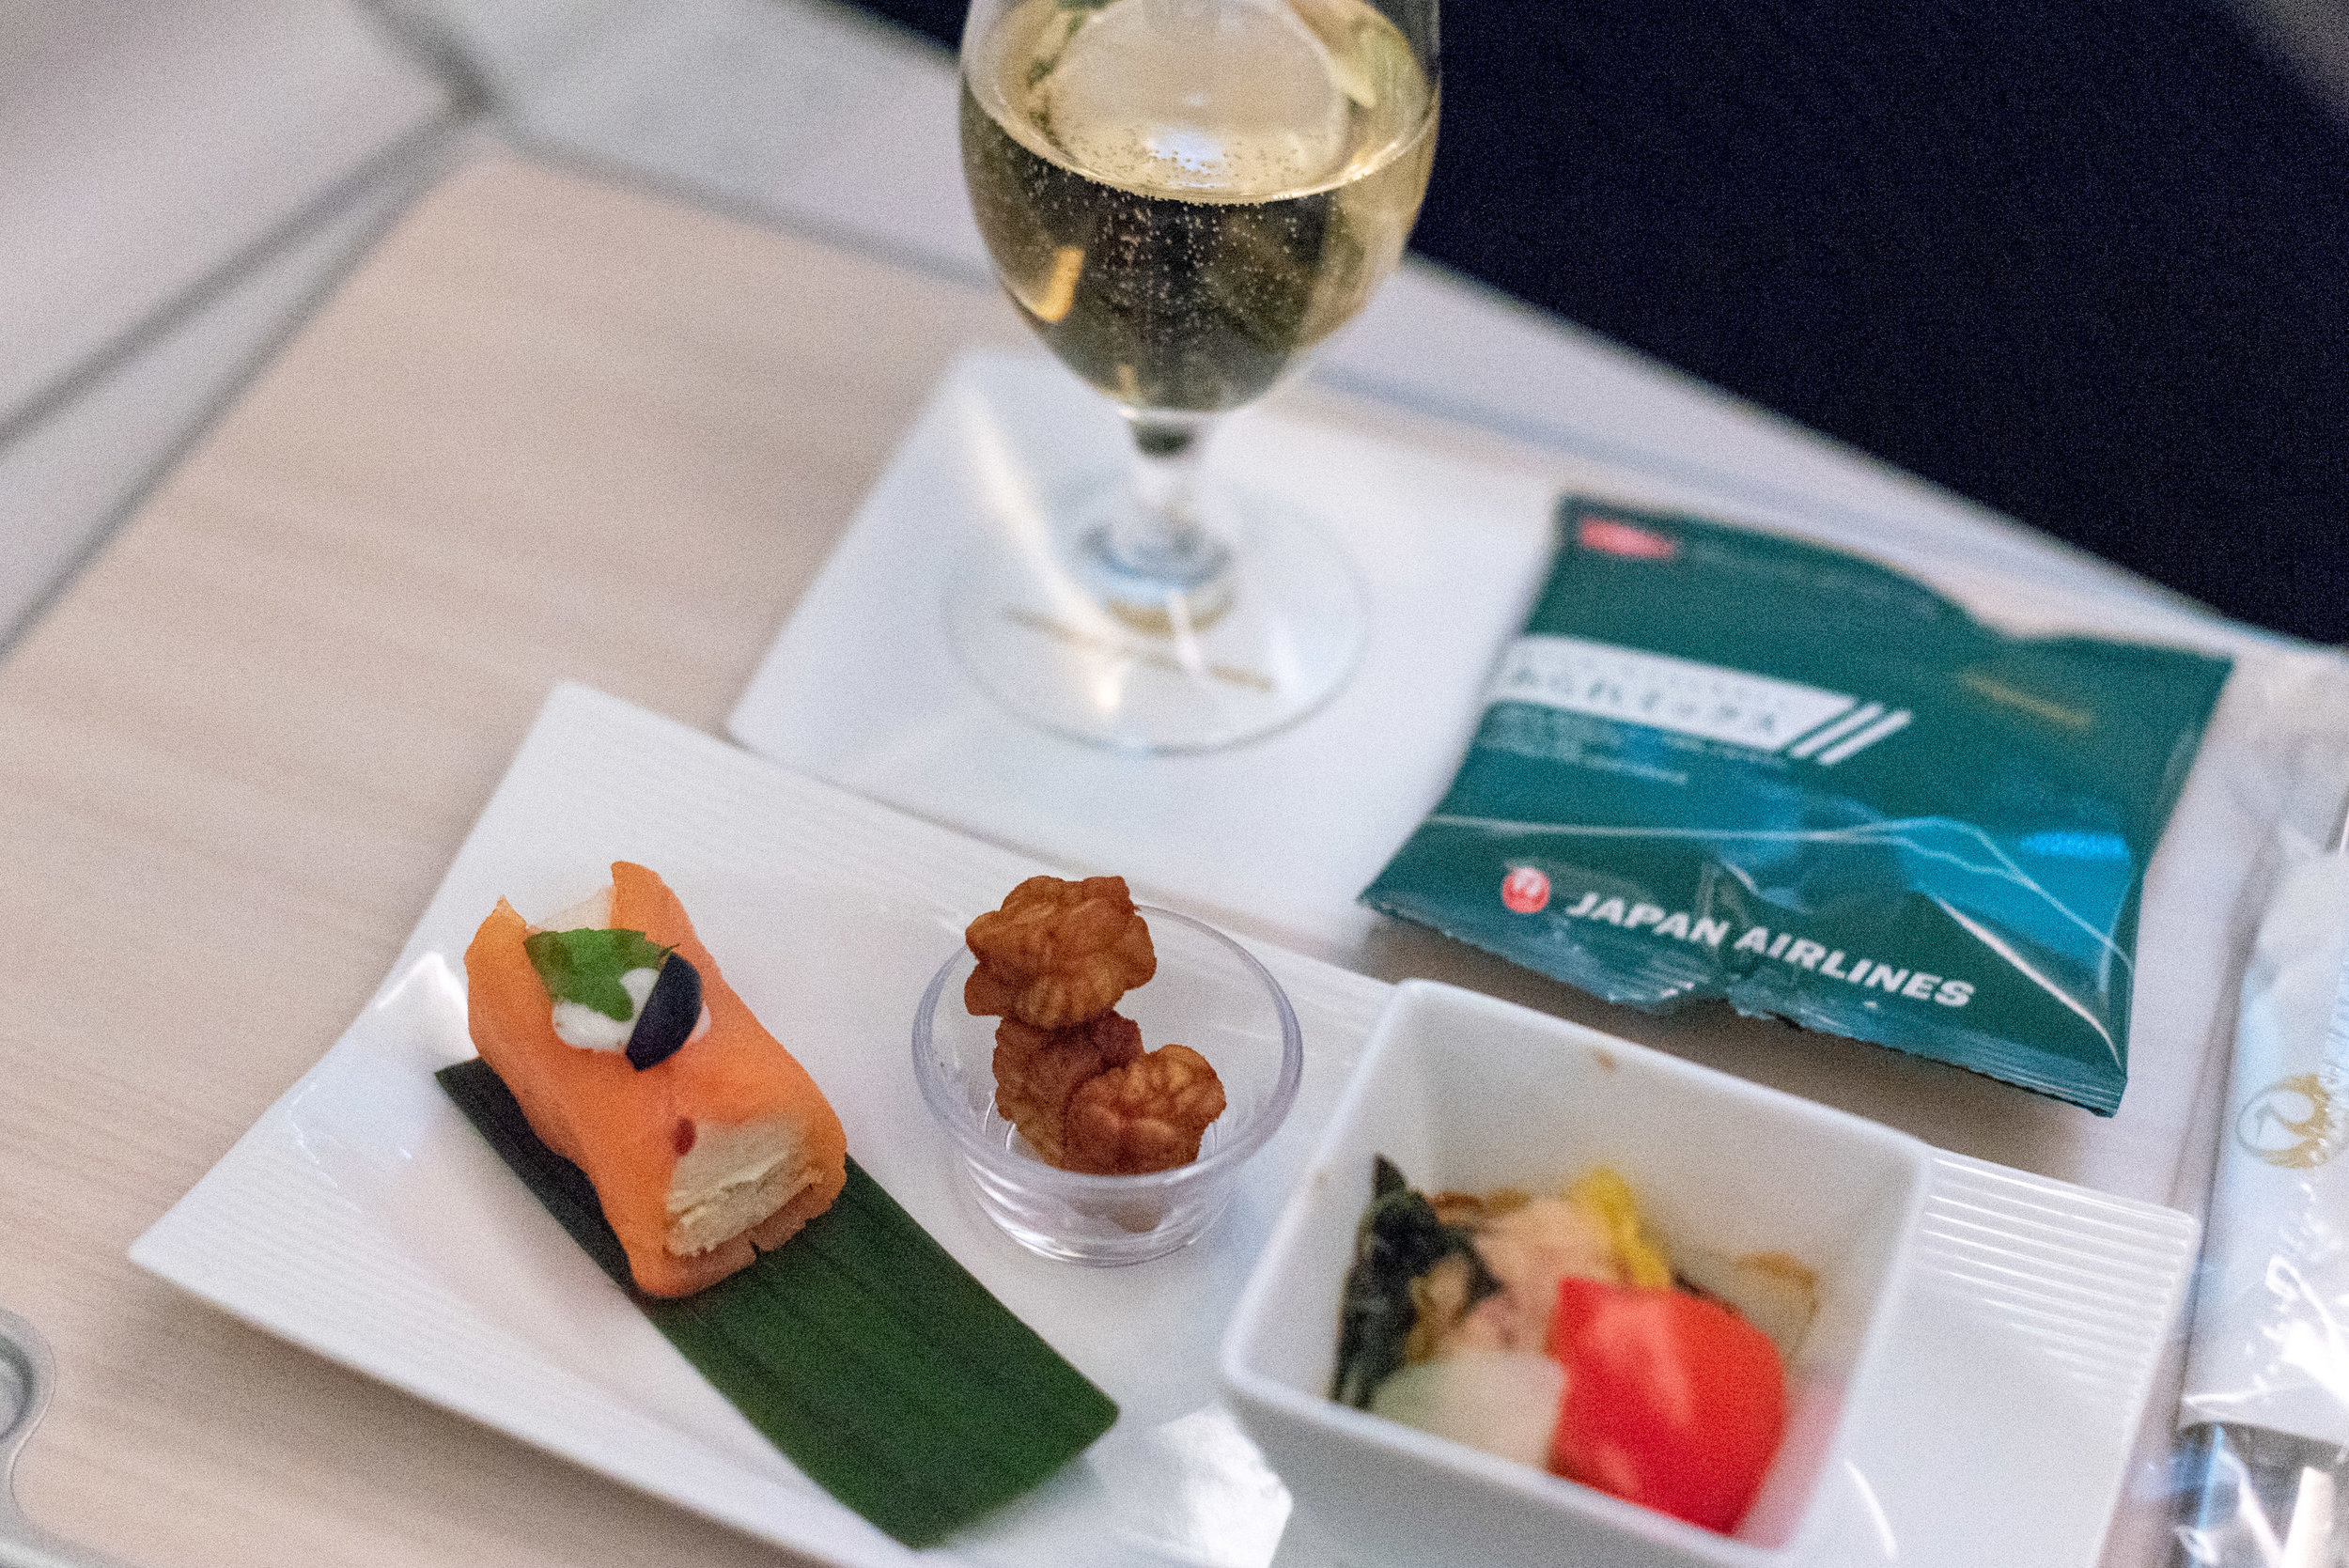 Supper Japan Airlines Business Class JL724 - KUL to NRT